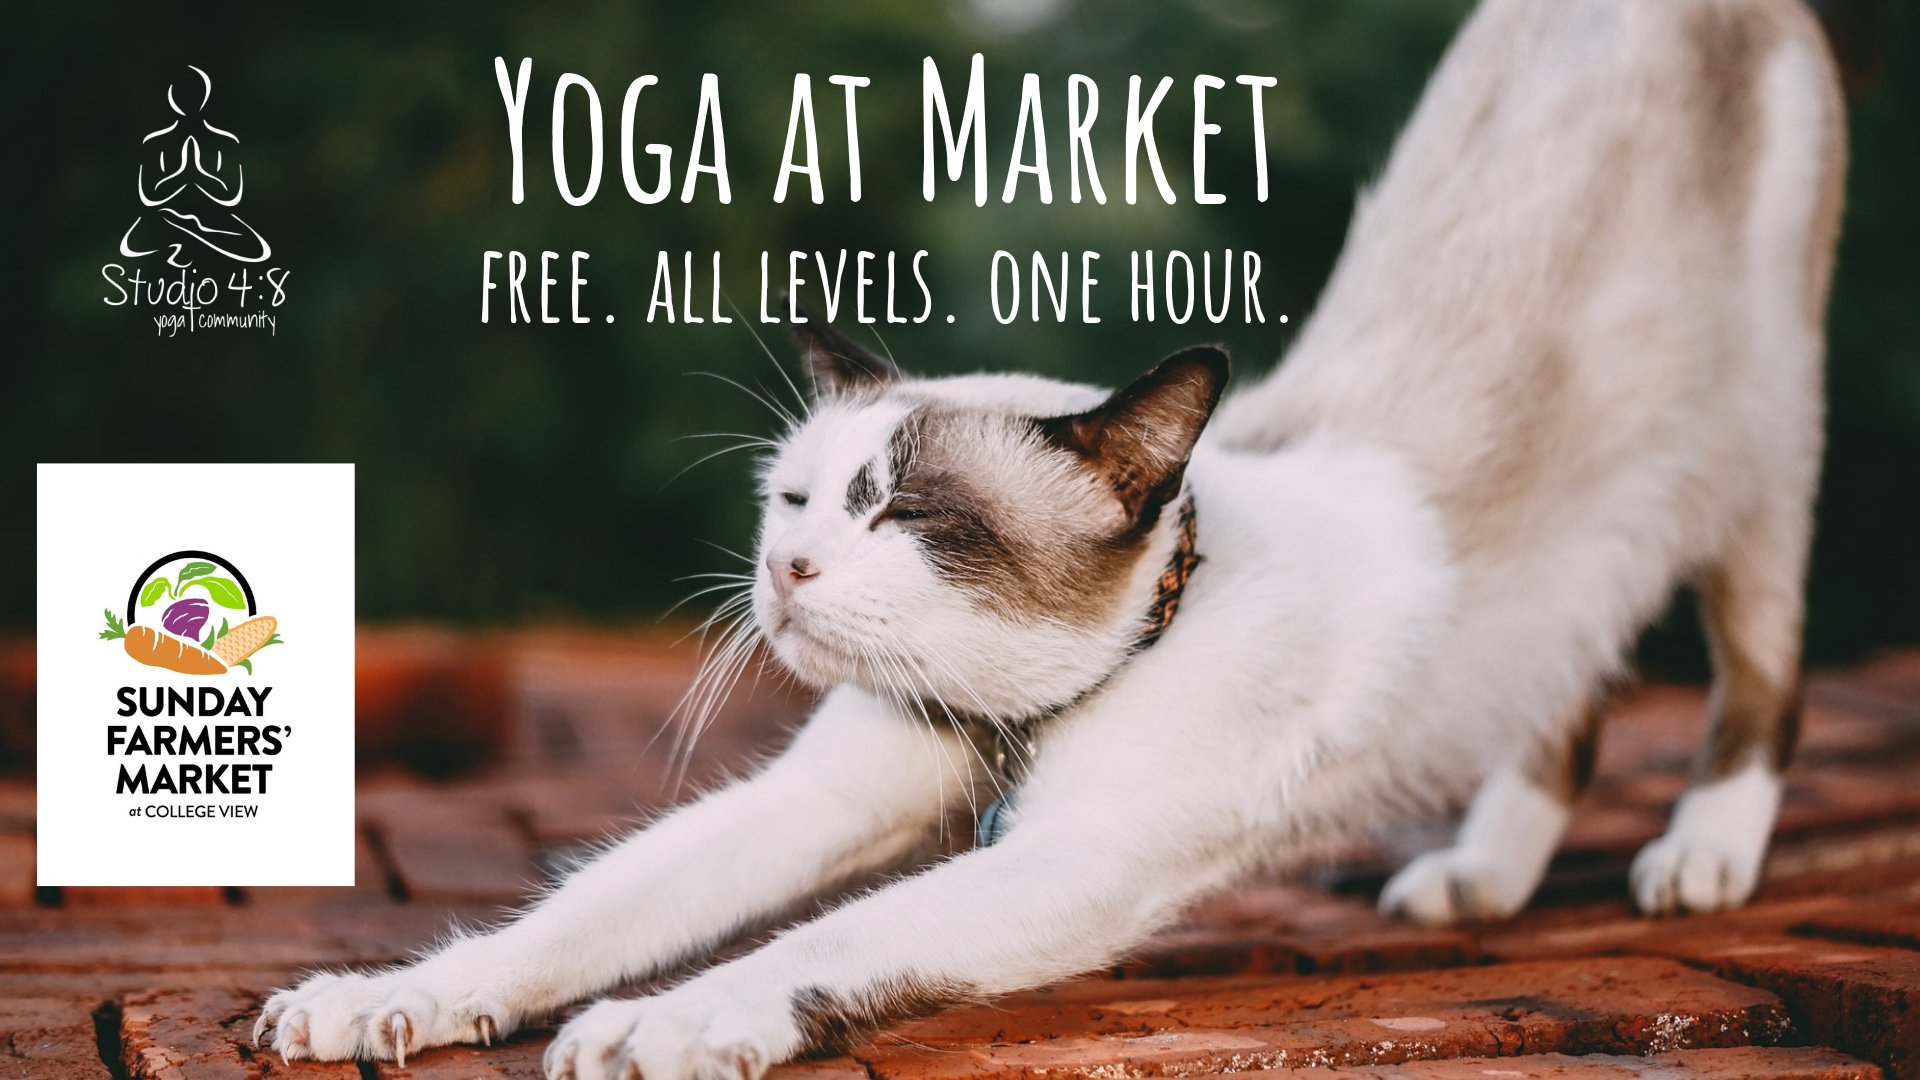 Yoga at the Market with Lindsay Daniels of Studio 4:8